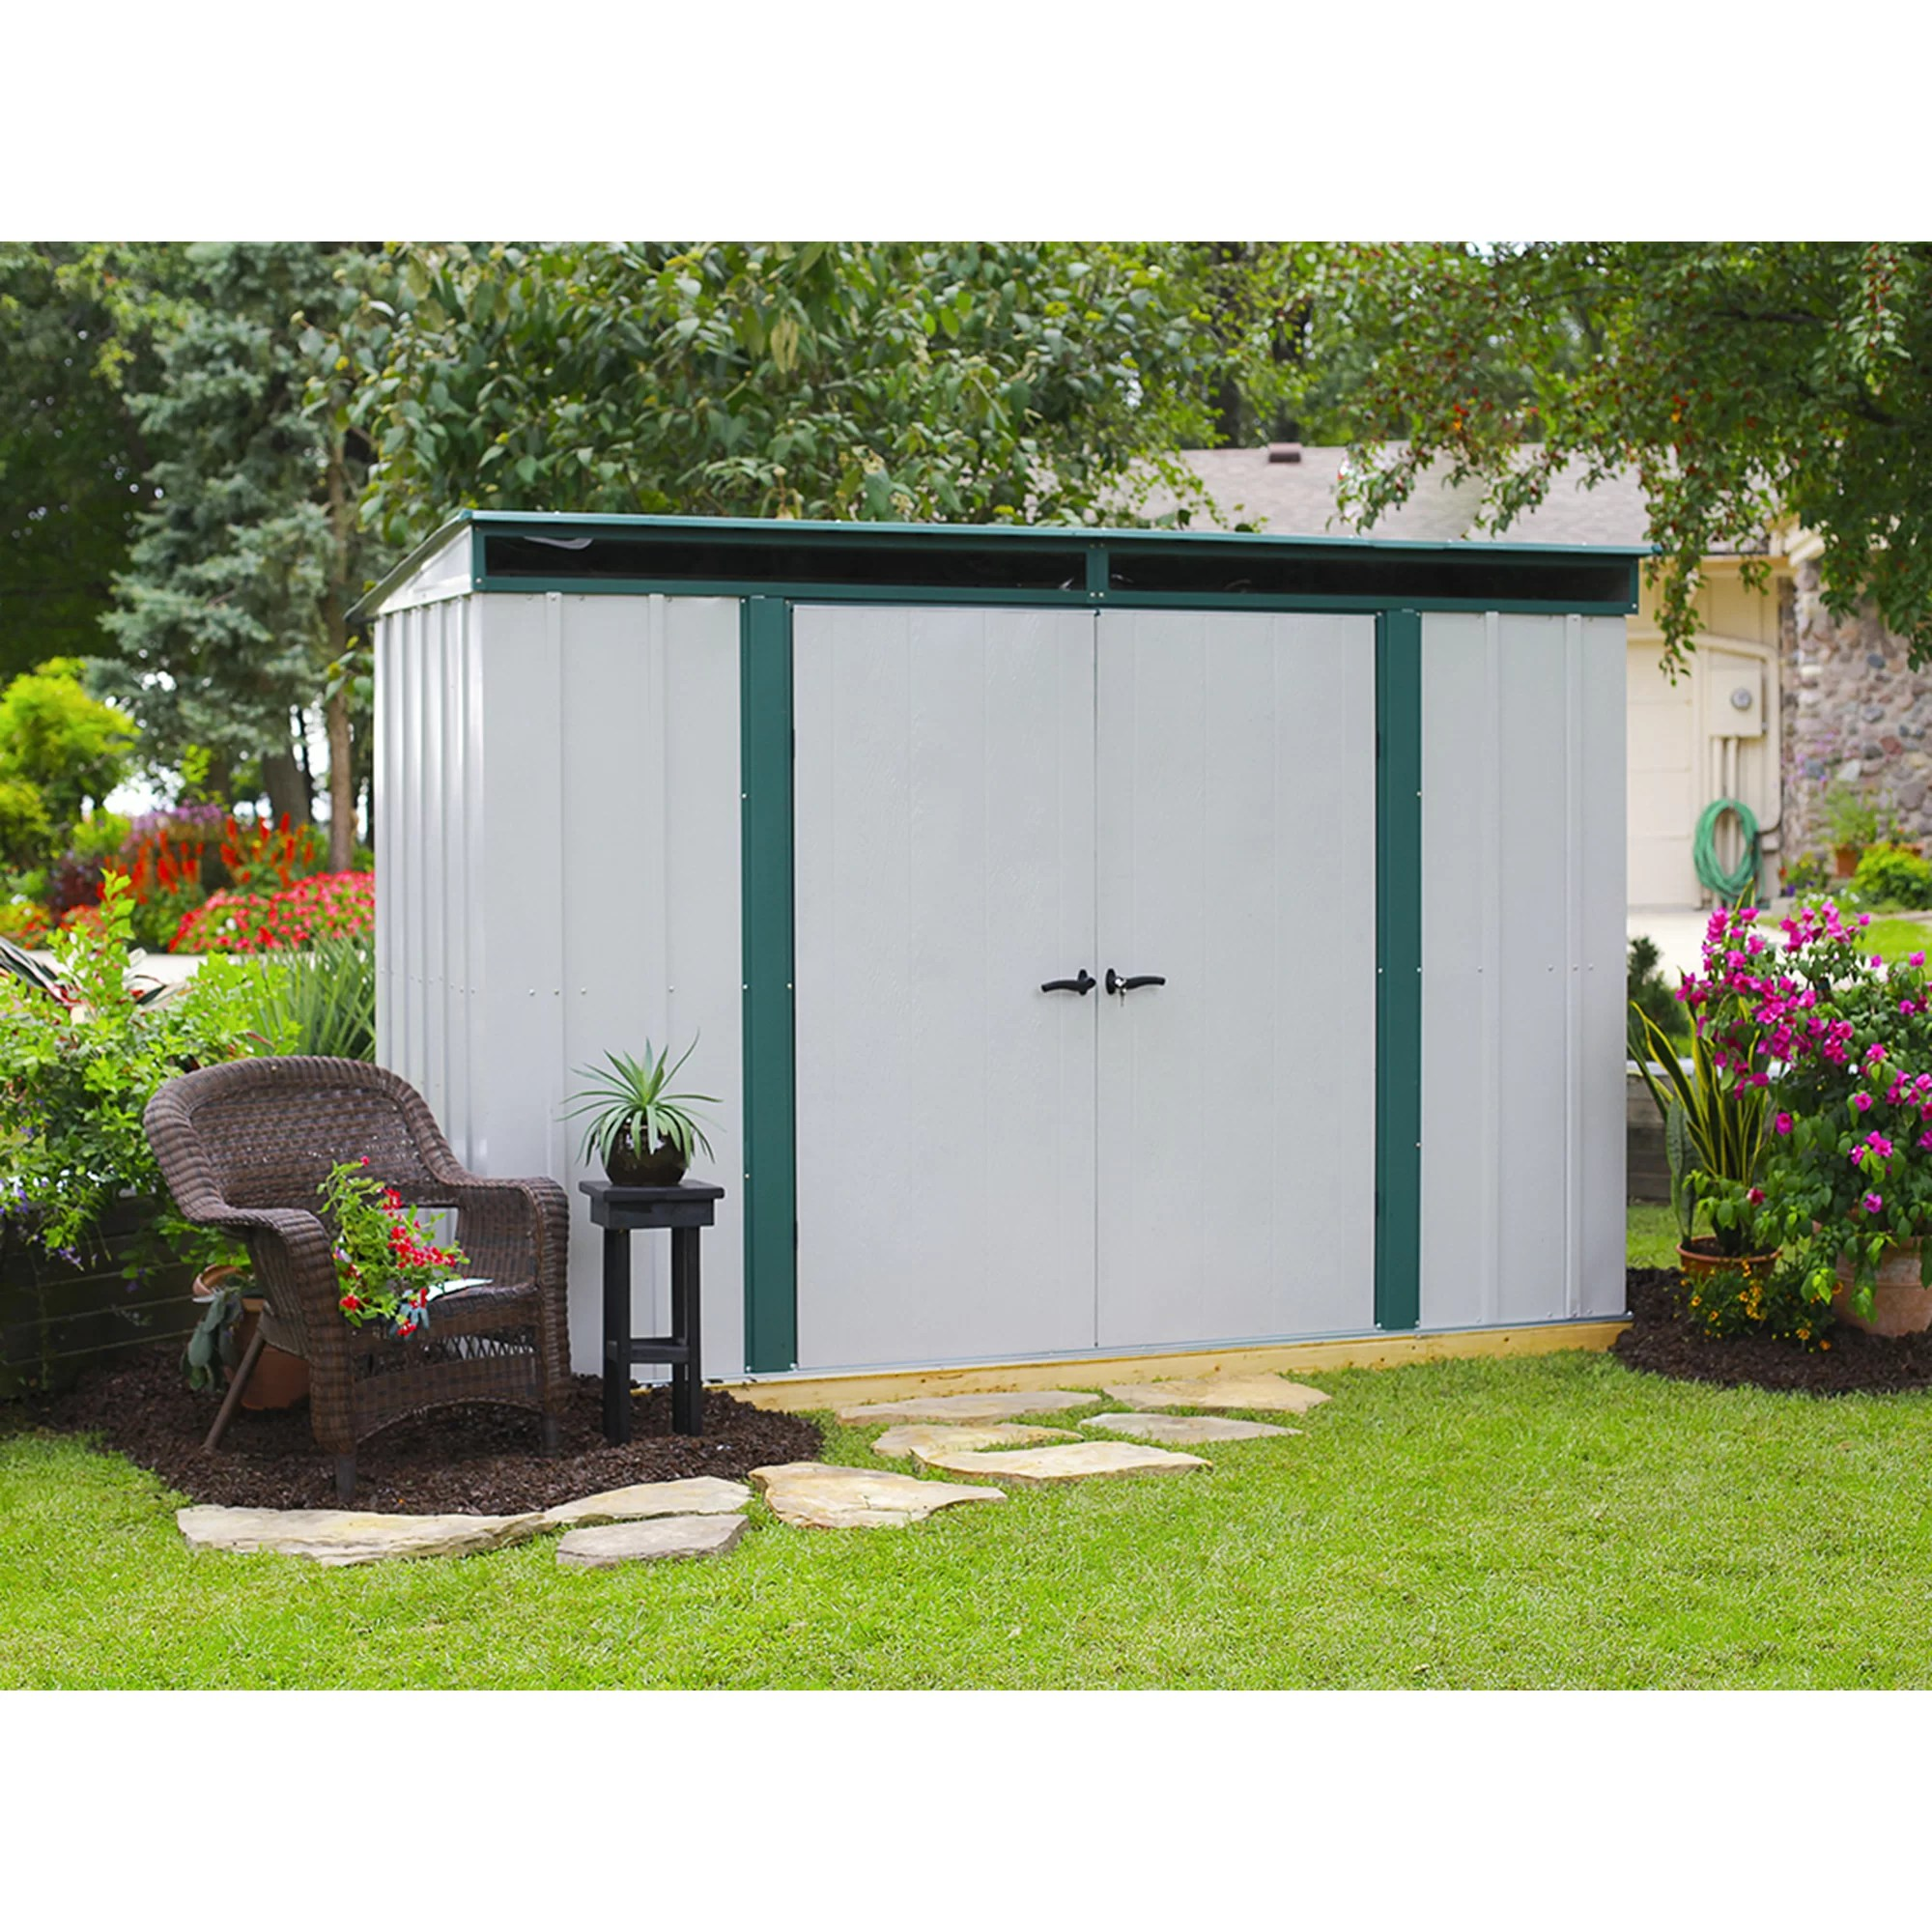 Steel Storage Sheds Euro Lite 10 Ft X 4 Ft Metal Storage Shed